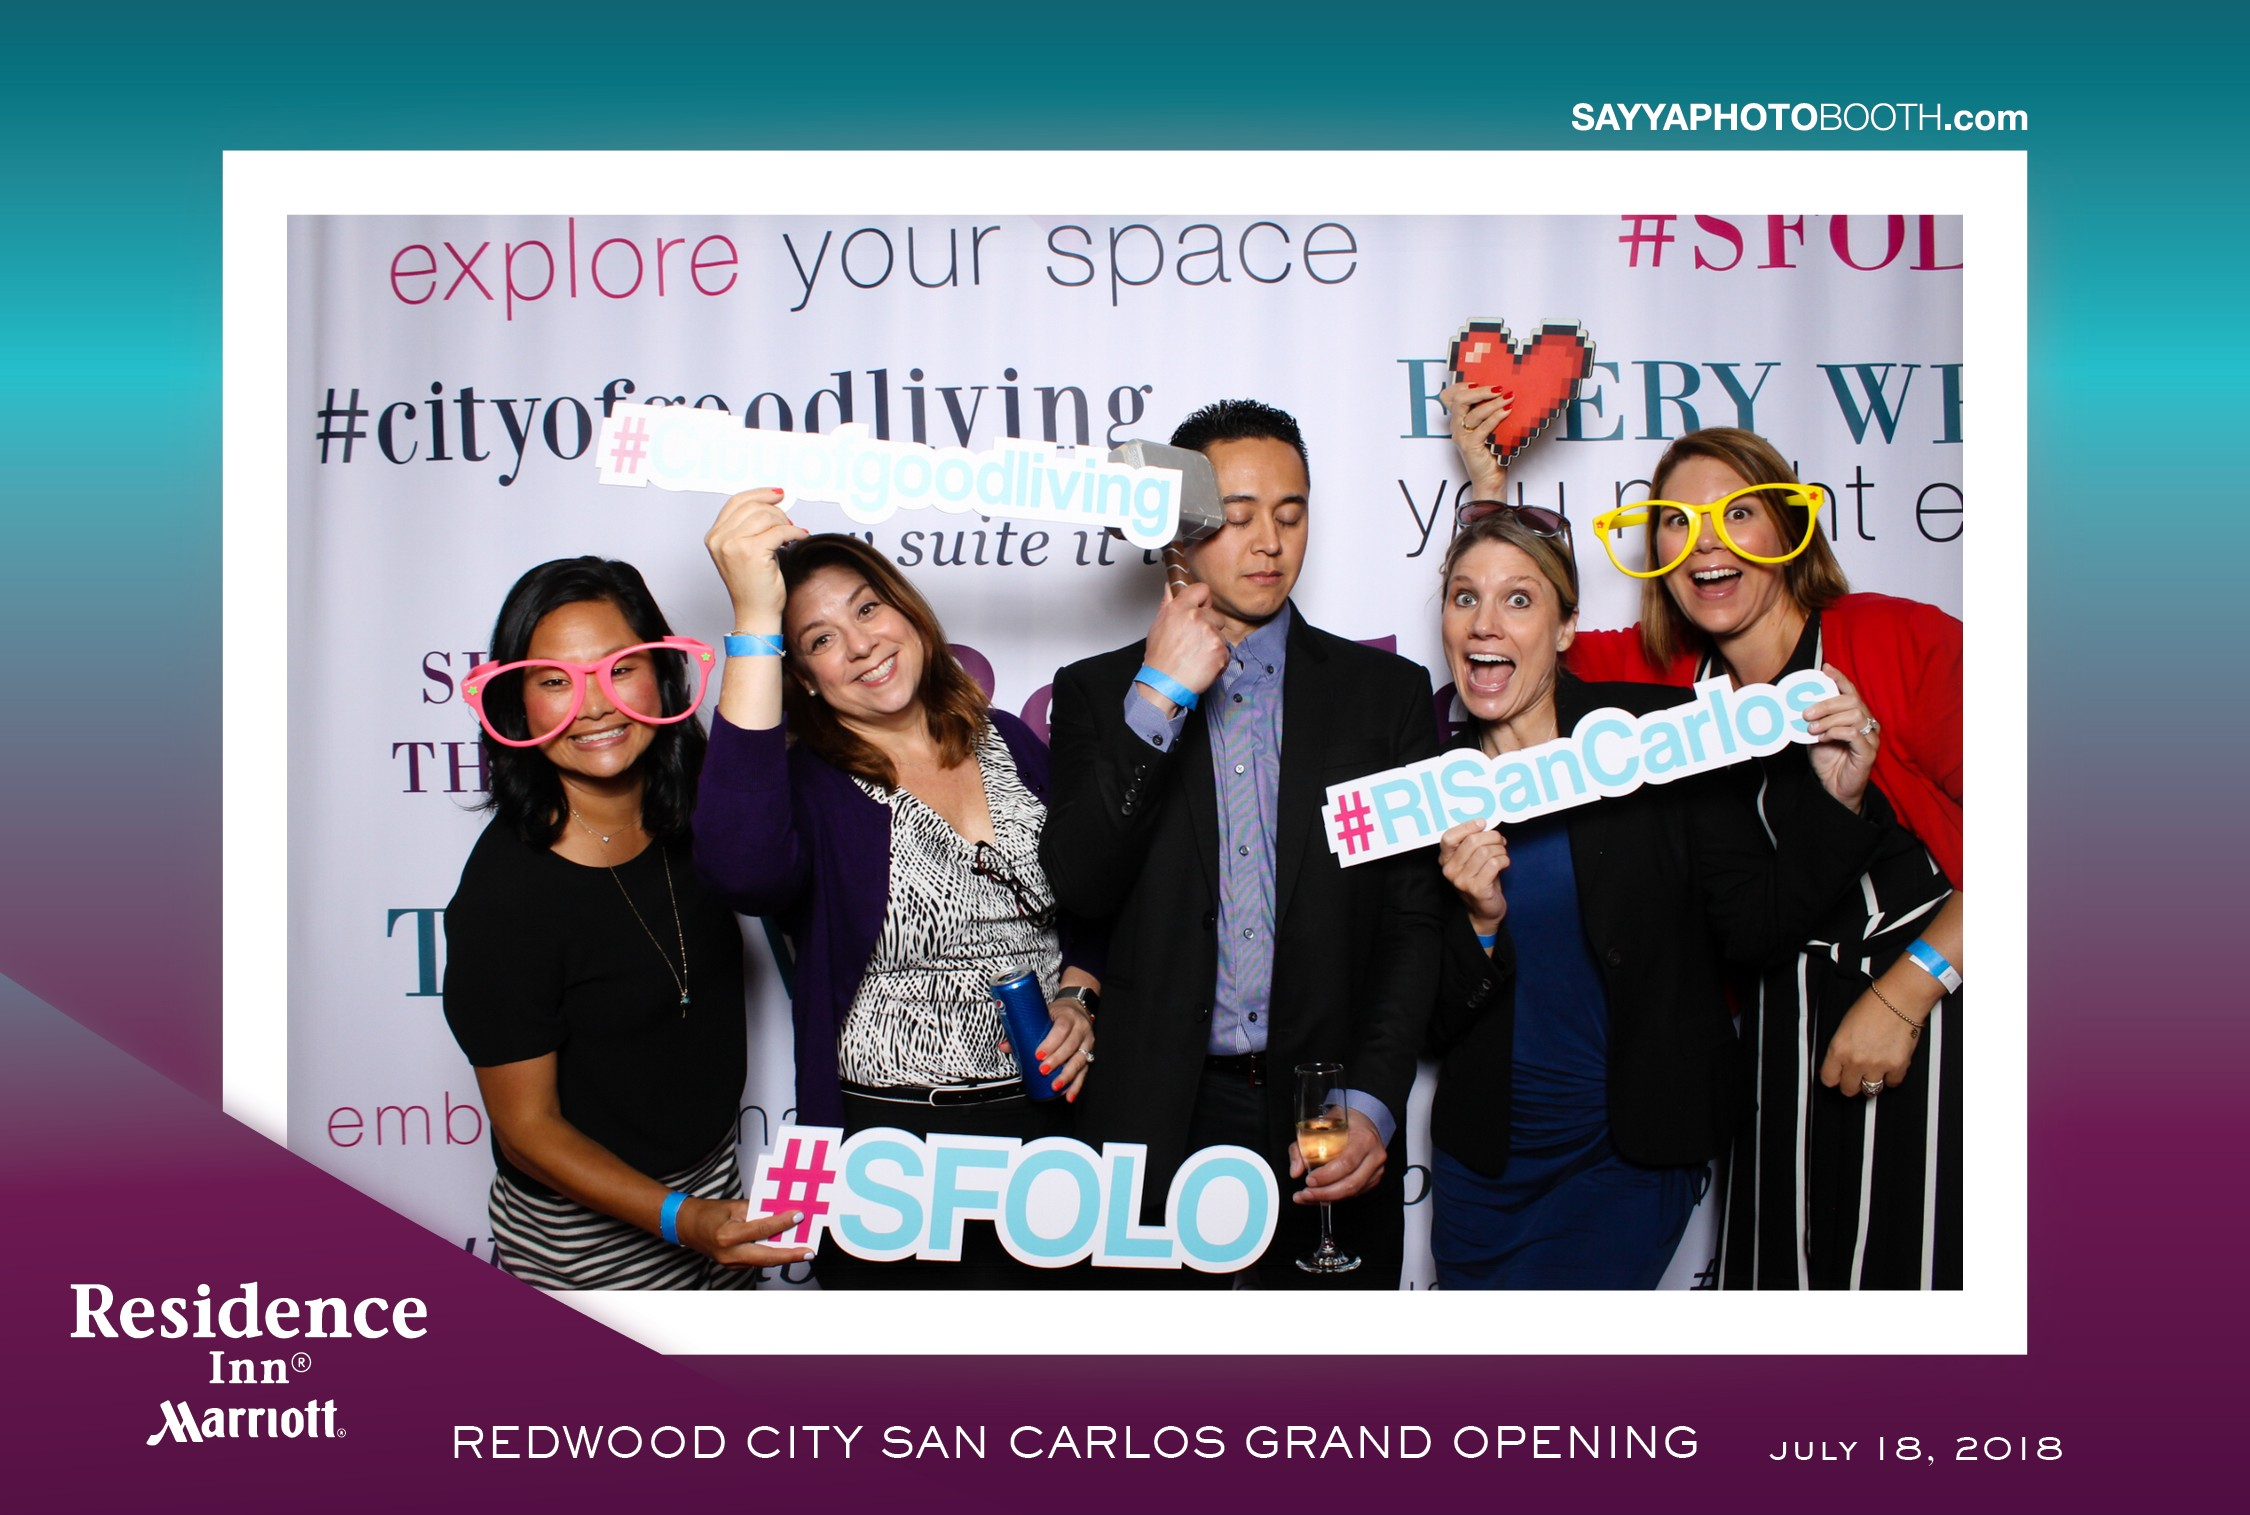 Redwood City San Carlos Grand Openin